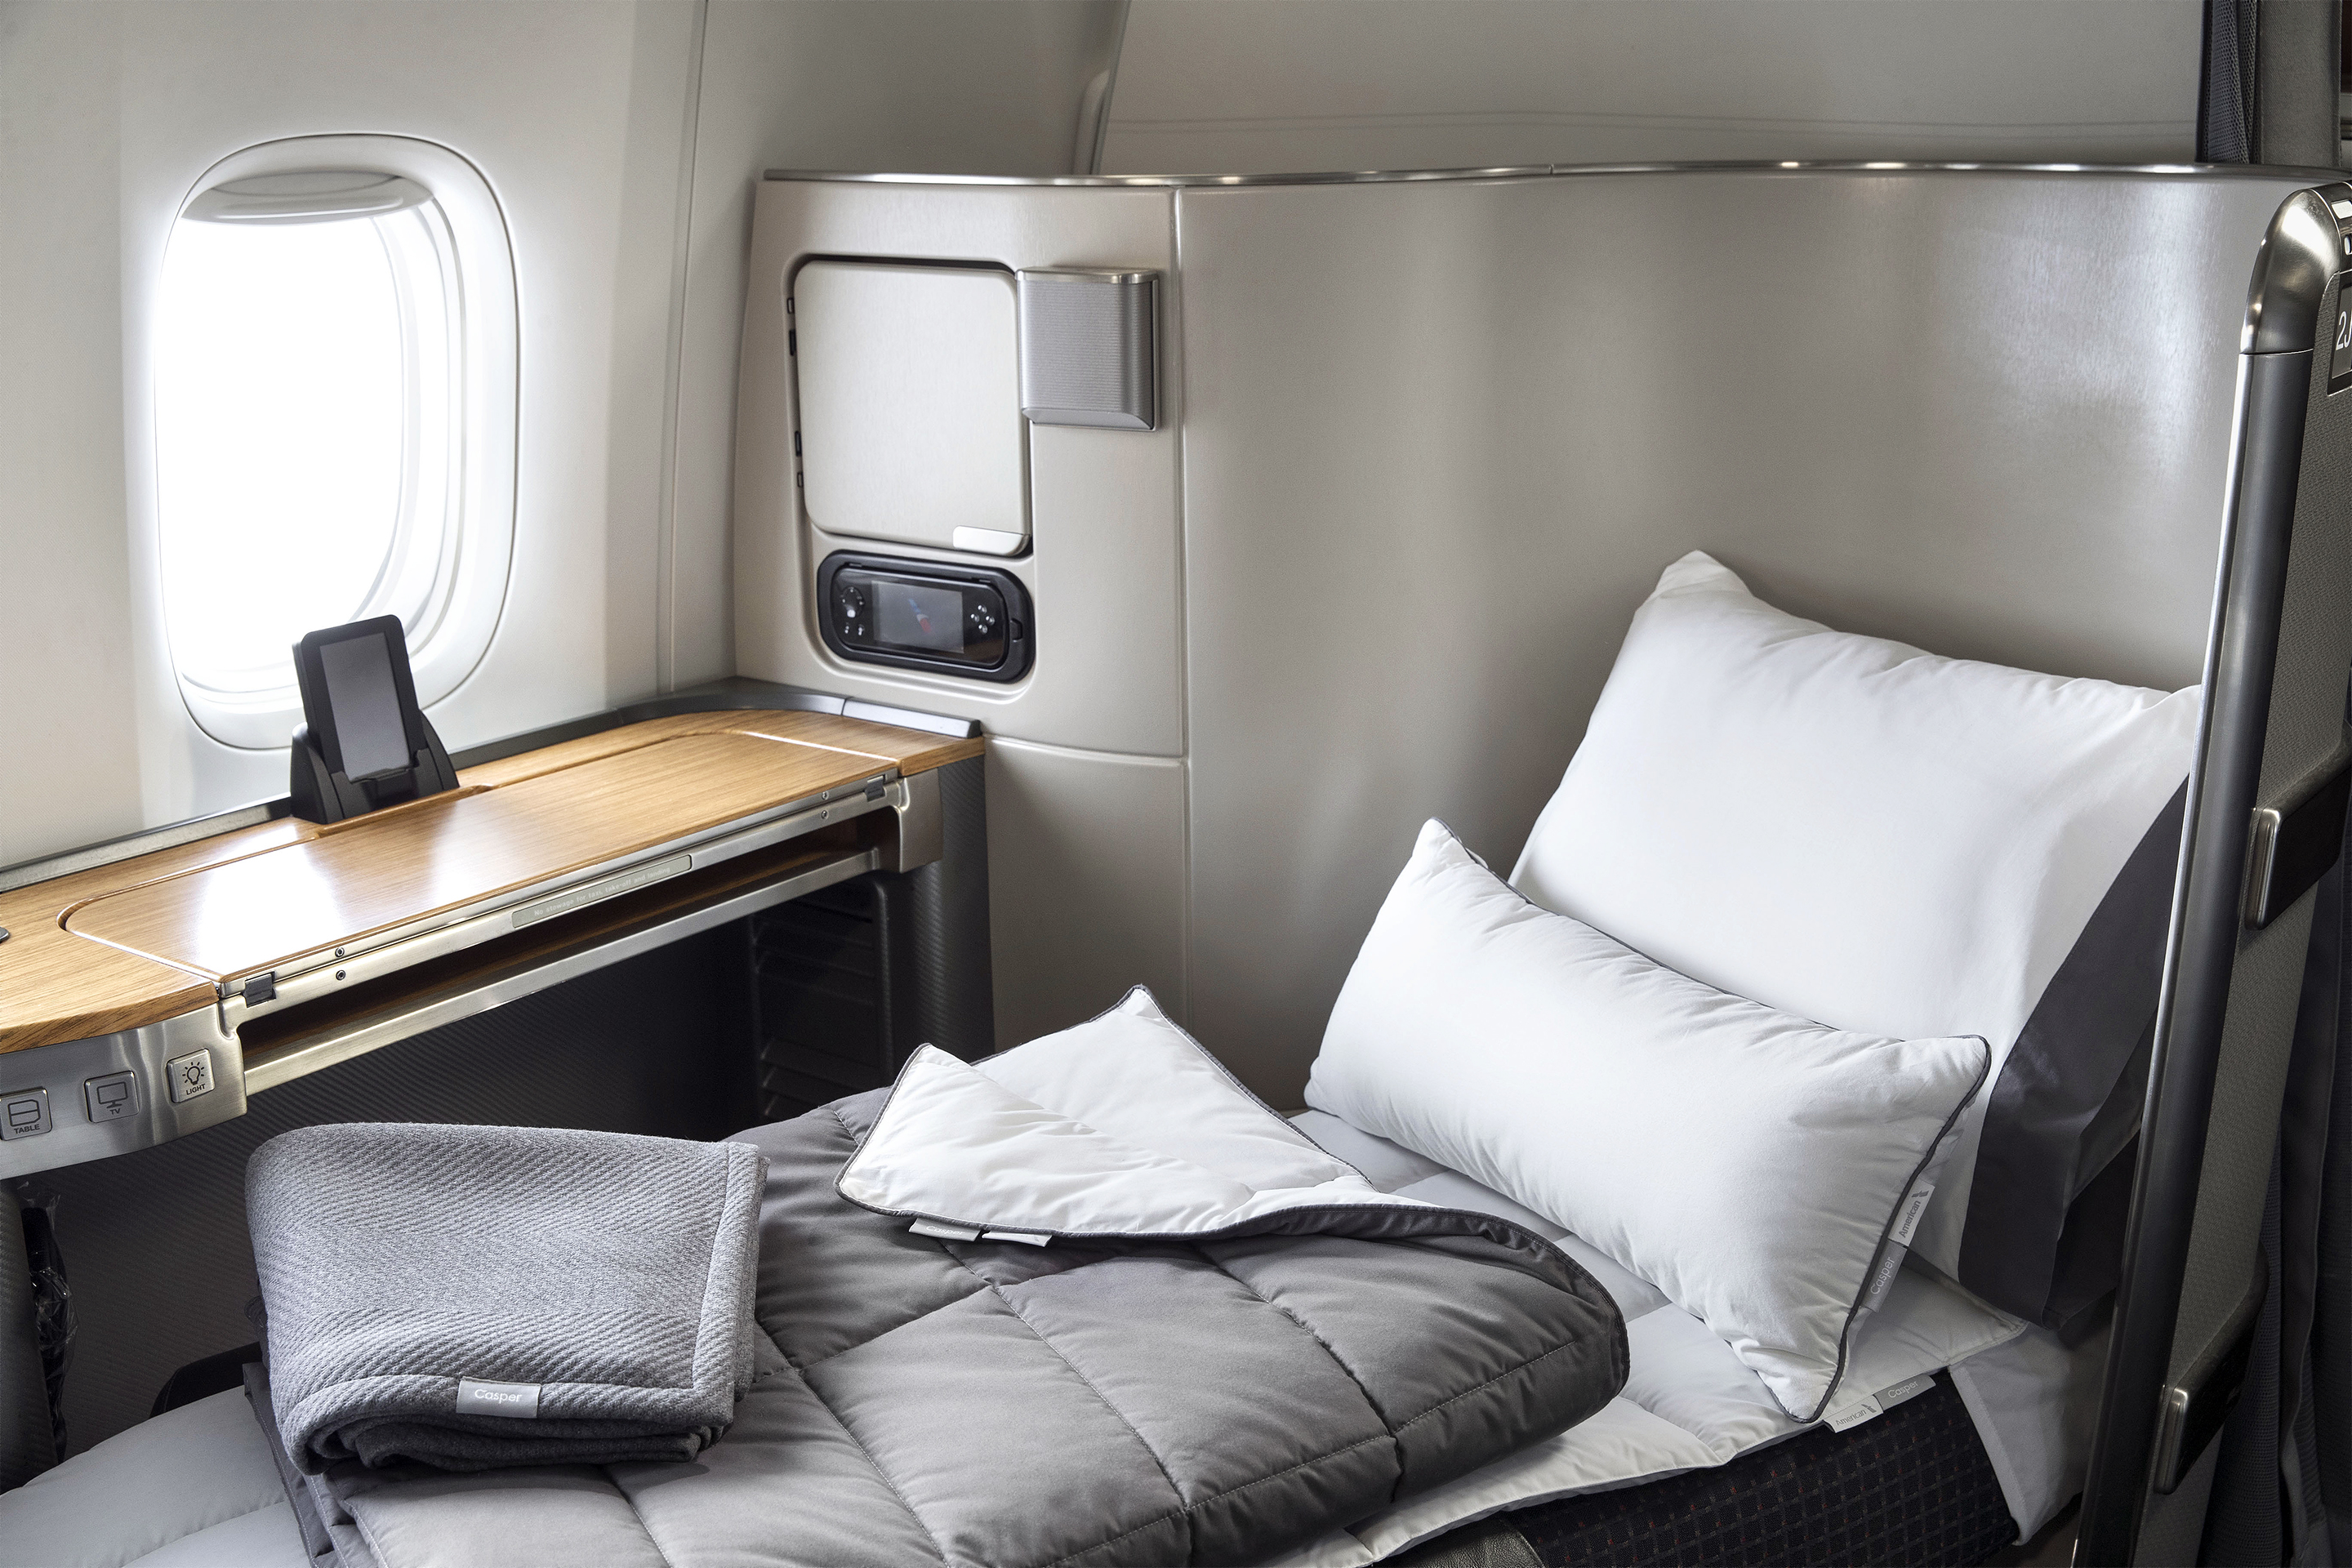 Casper bedding is provided to passengers in premium cabins on American Airlines.